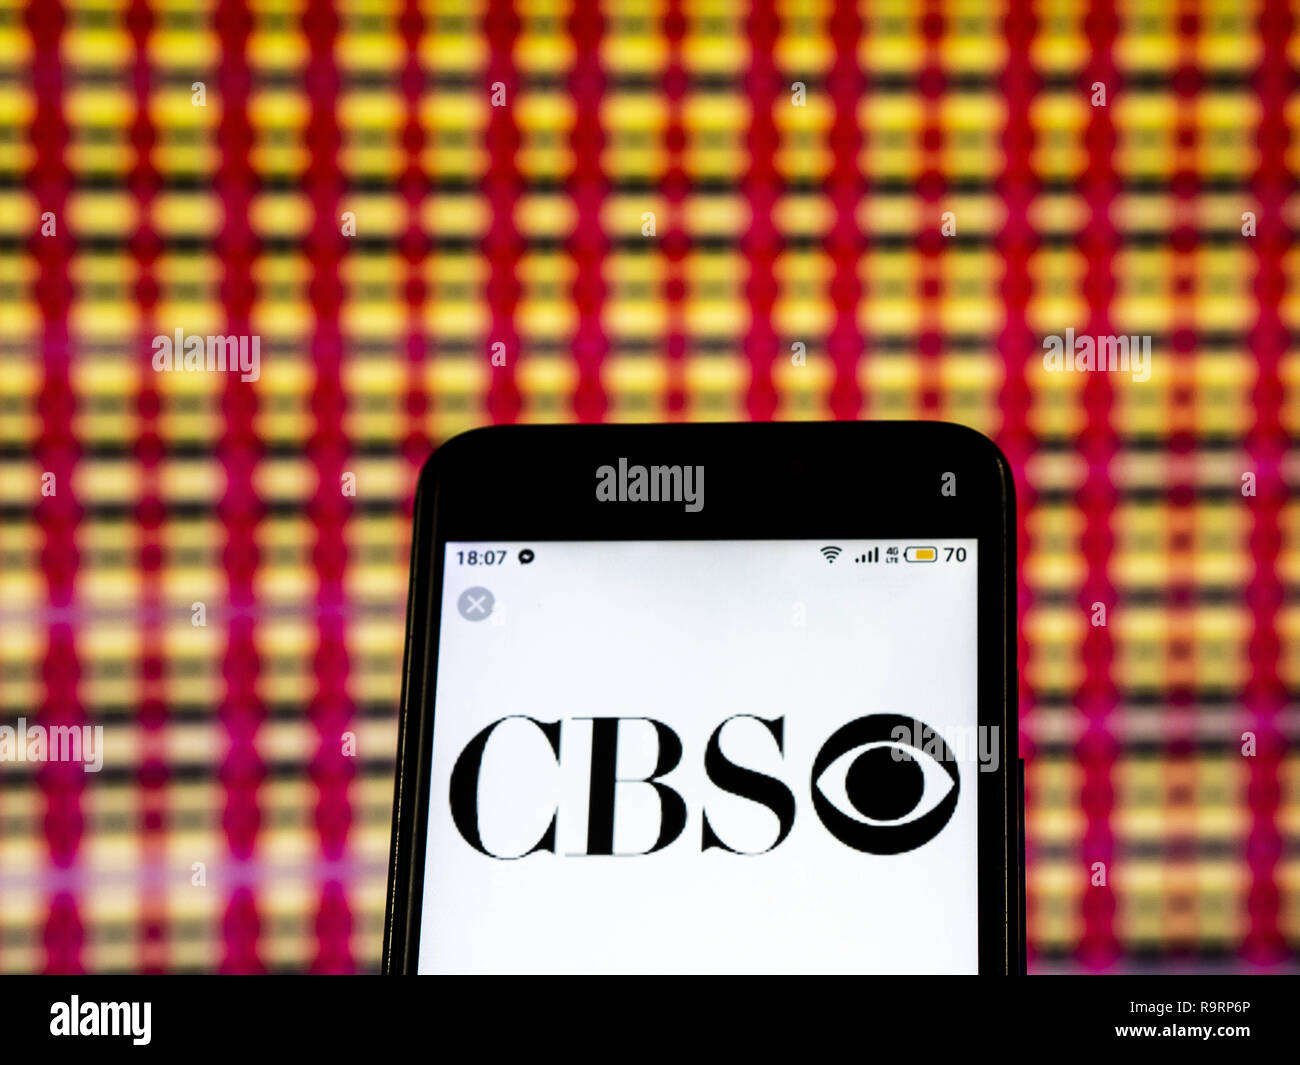 Cbs Logo Stock Photos & Cbs Logo Stock Images - Alamy